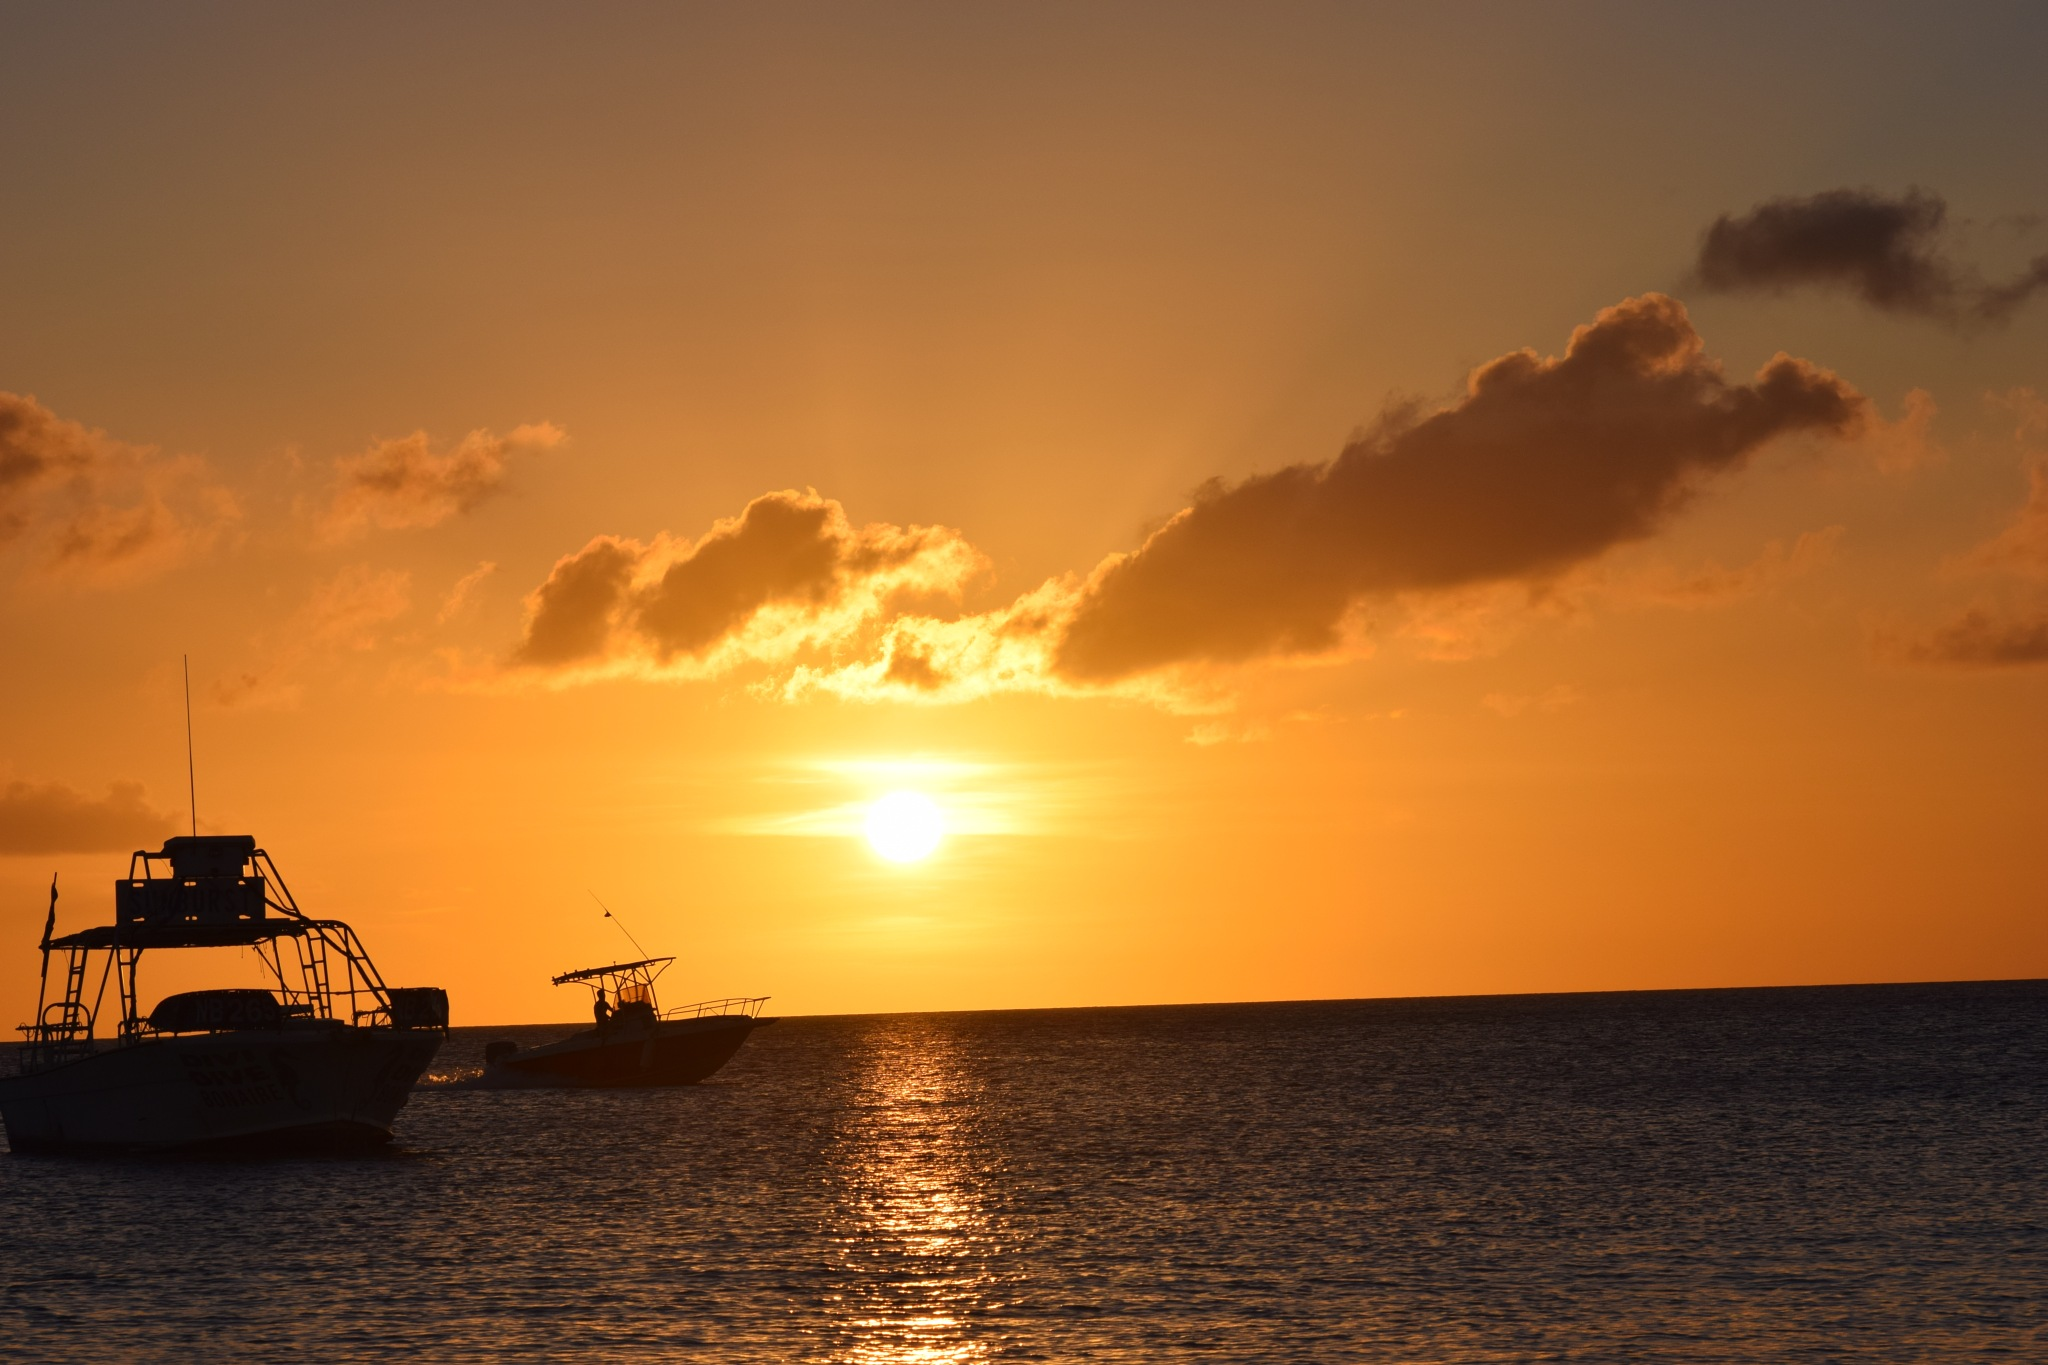 Bonaire sunset2 by KMcCord